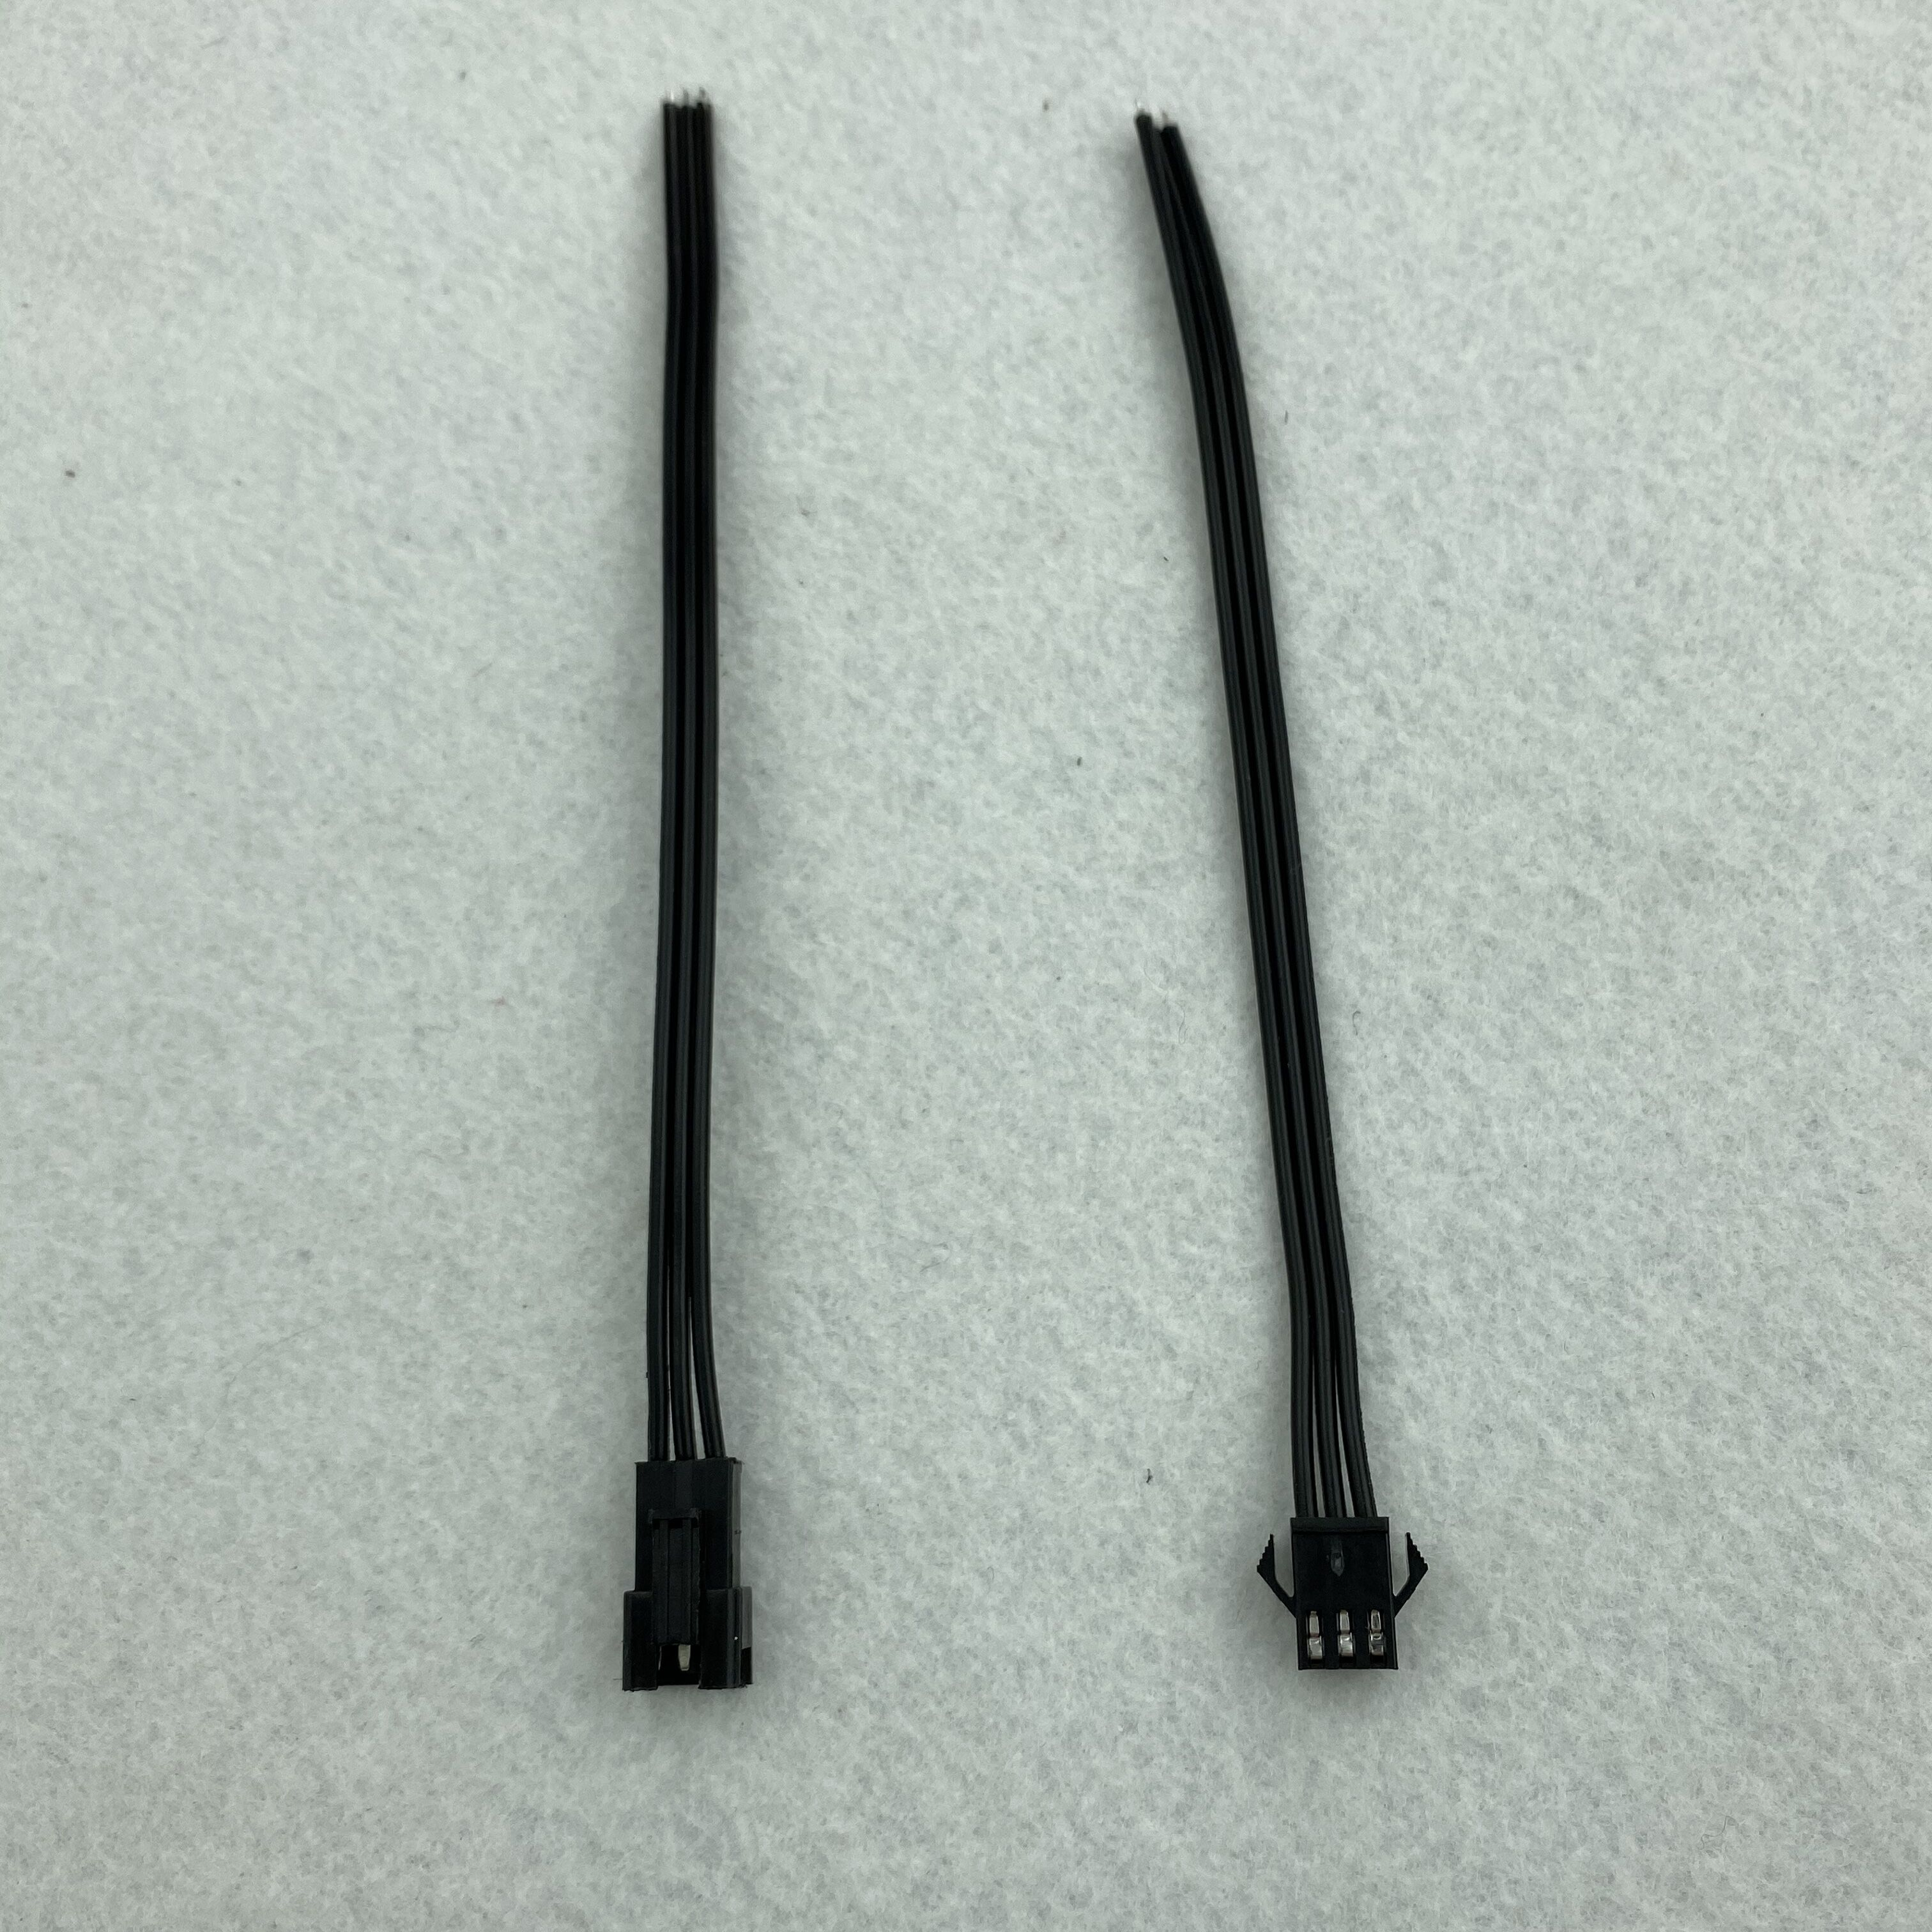 3PIN JST Plug And Socket,with 15cm Long Wire Each,20AWG Wire;all Black Wire